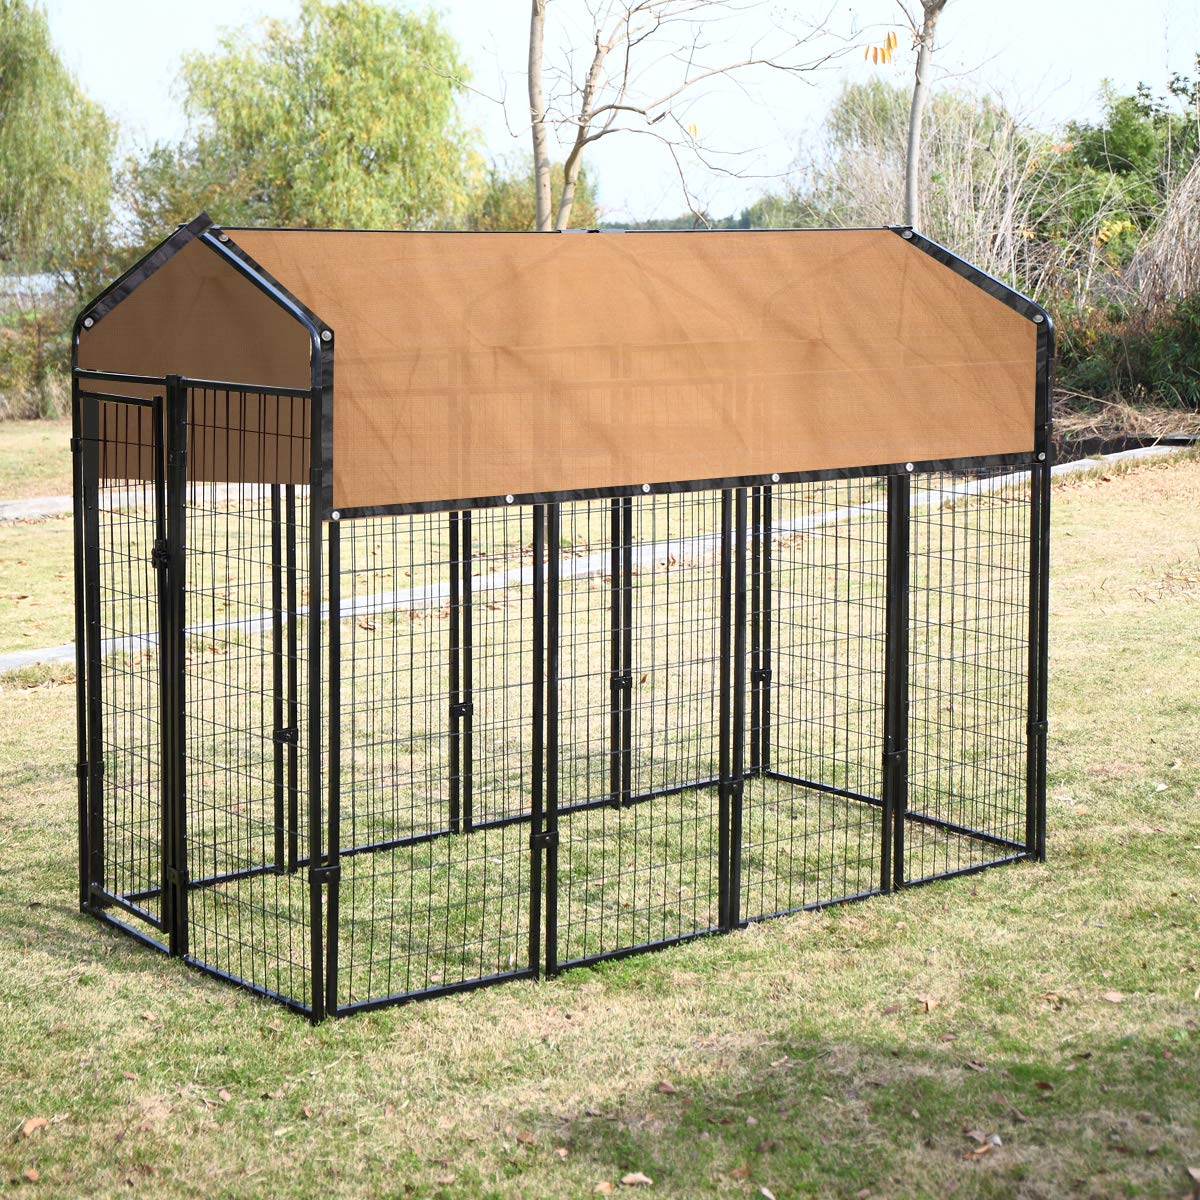 Large Dog Kennel Shade Cover Pet Crate Dog CageUV Rated Shade Cover 6 x10 ft Beige